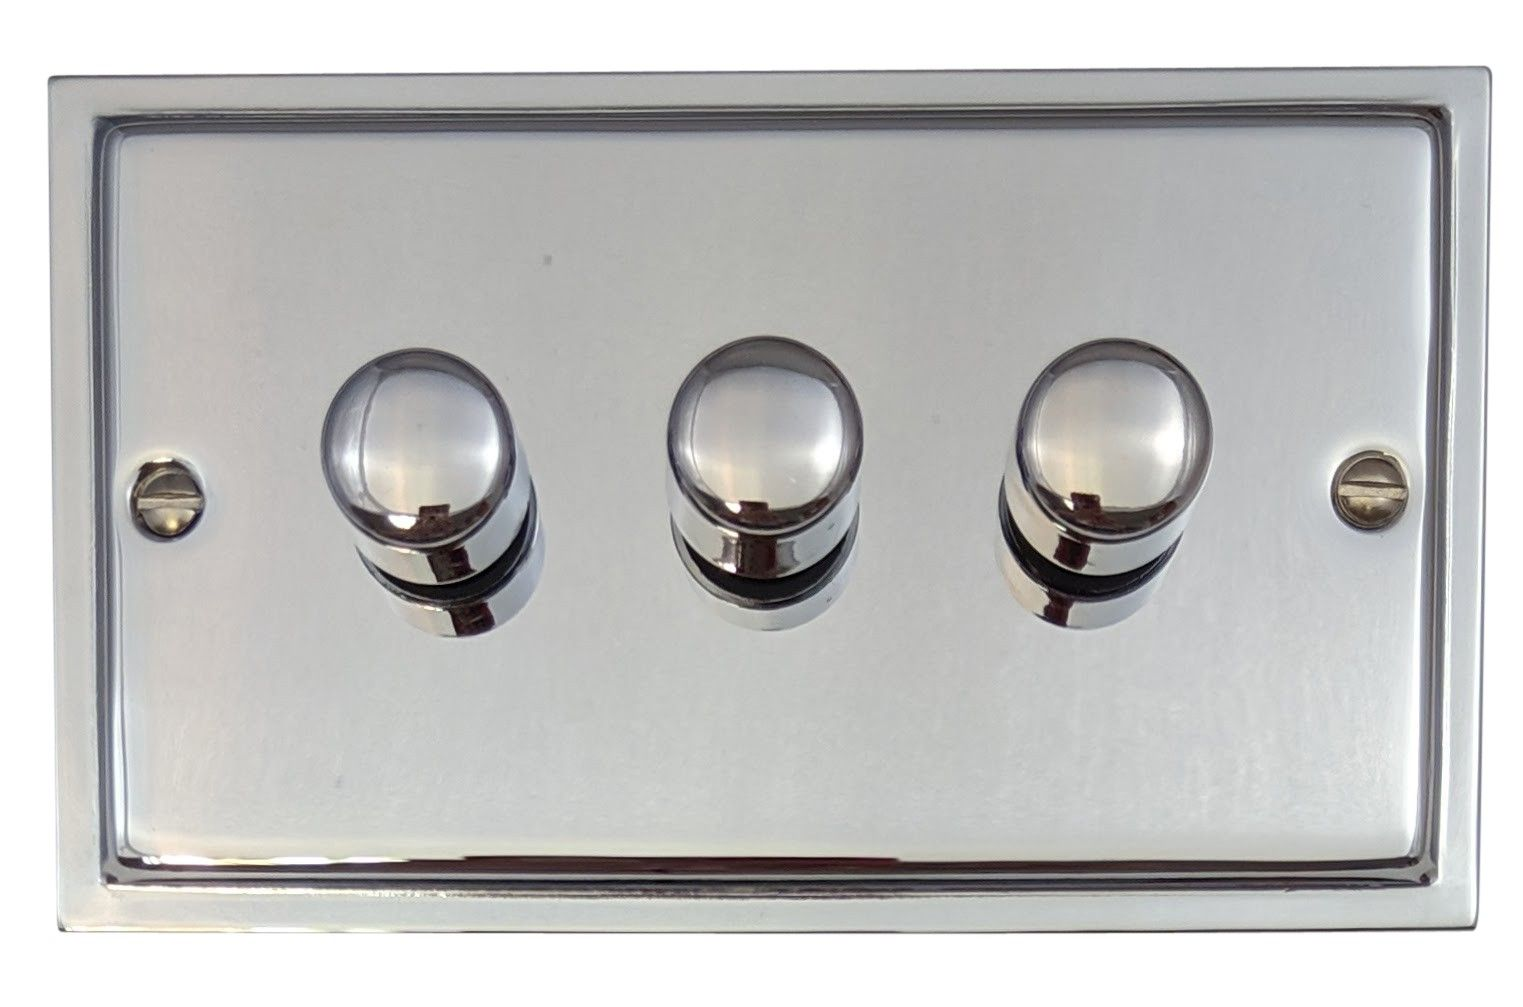 G&H HC13 Highline Plate Polished Chrome 3 Gang 1 or 2 Way 40-400W Dimmer Switch